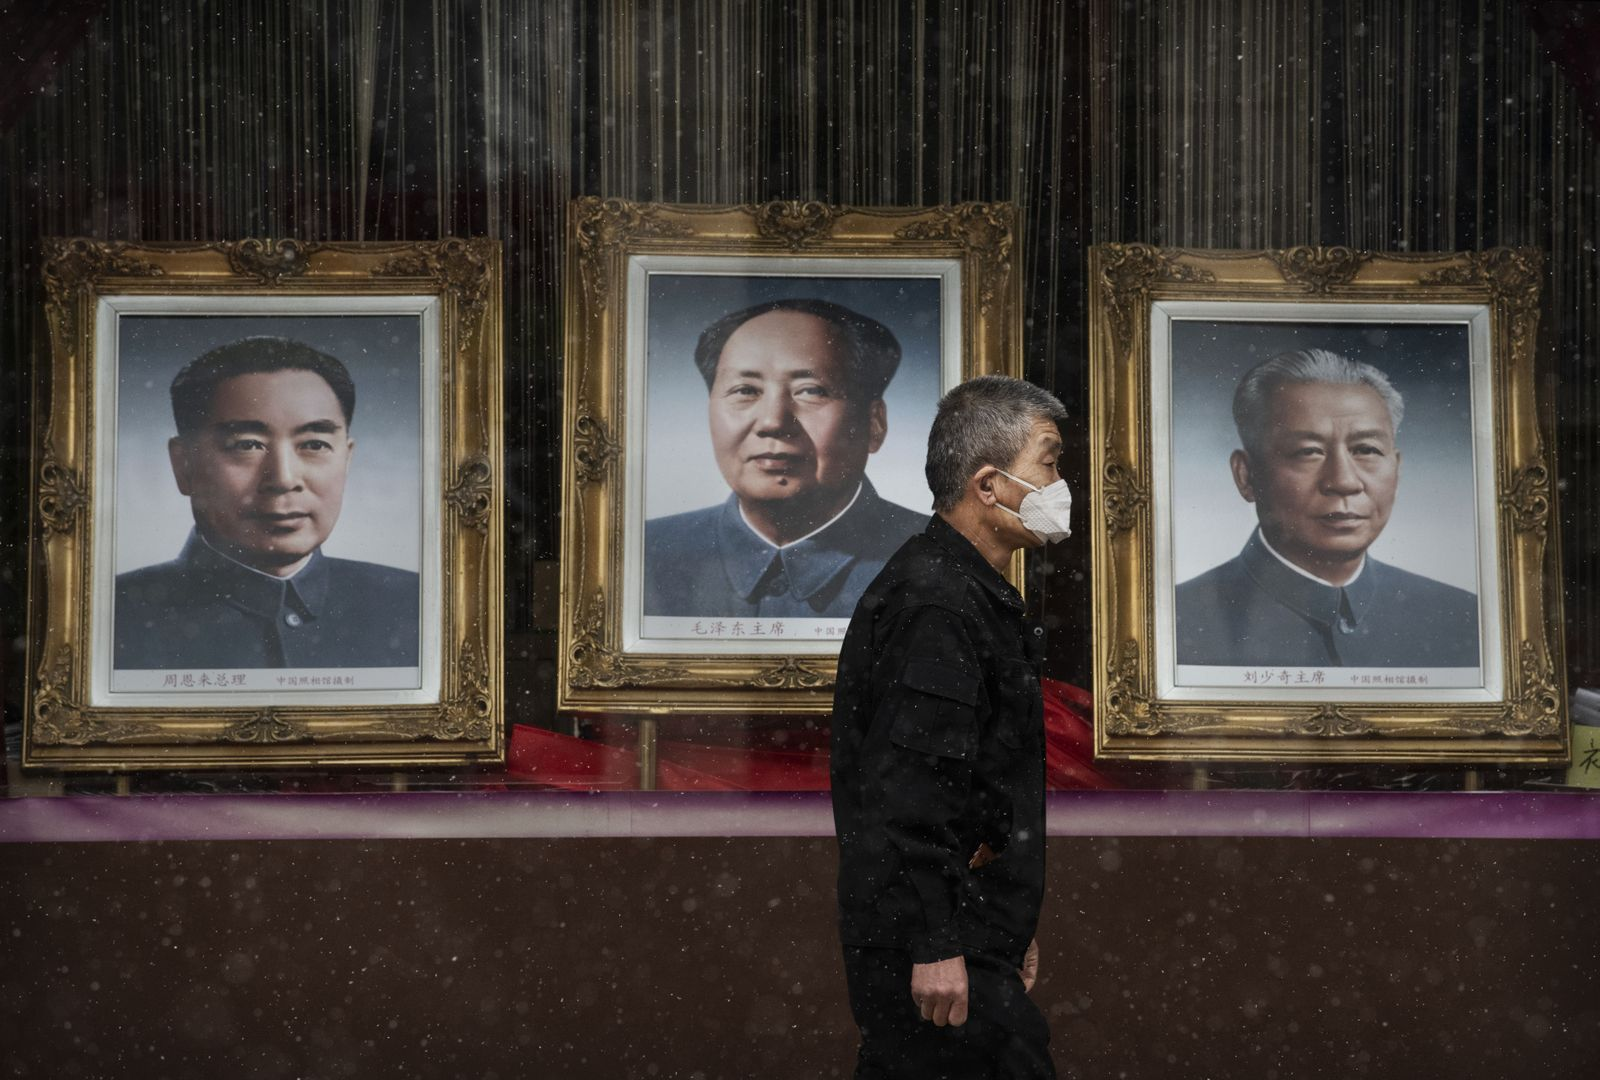 BESTPIX - Concern In China As Mystery Virus Spreads